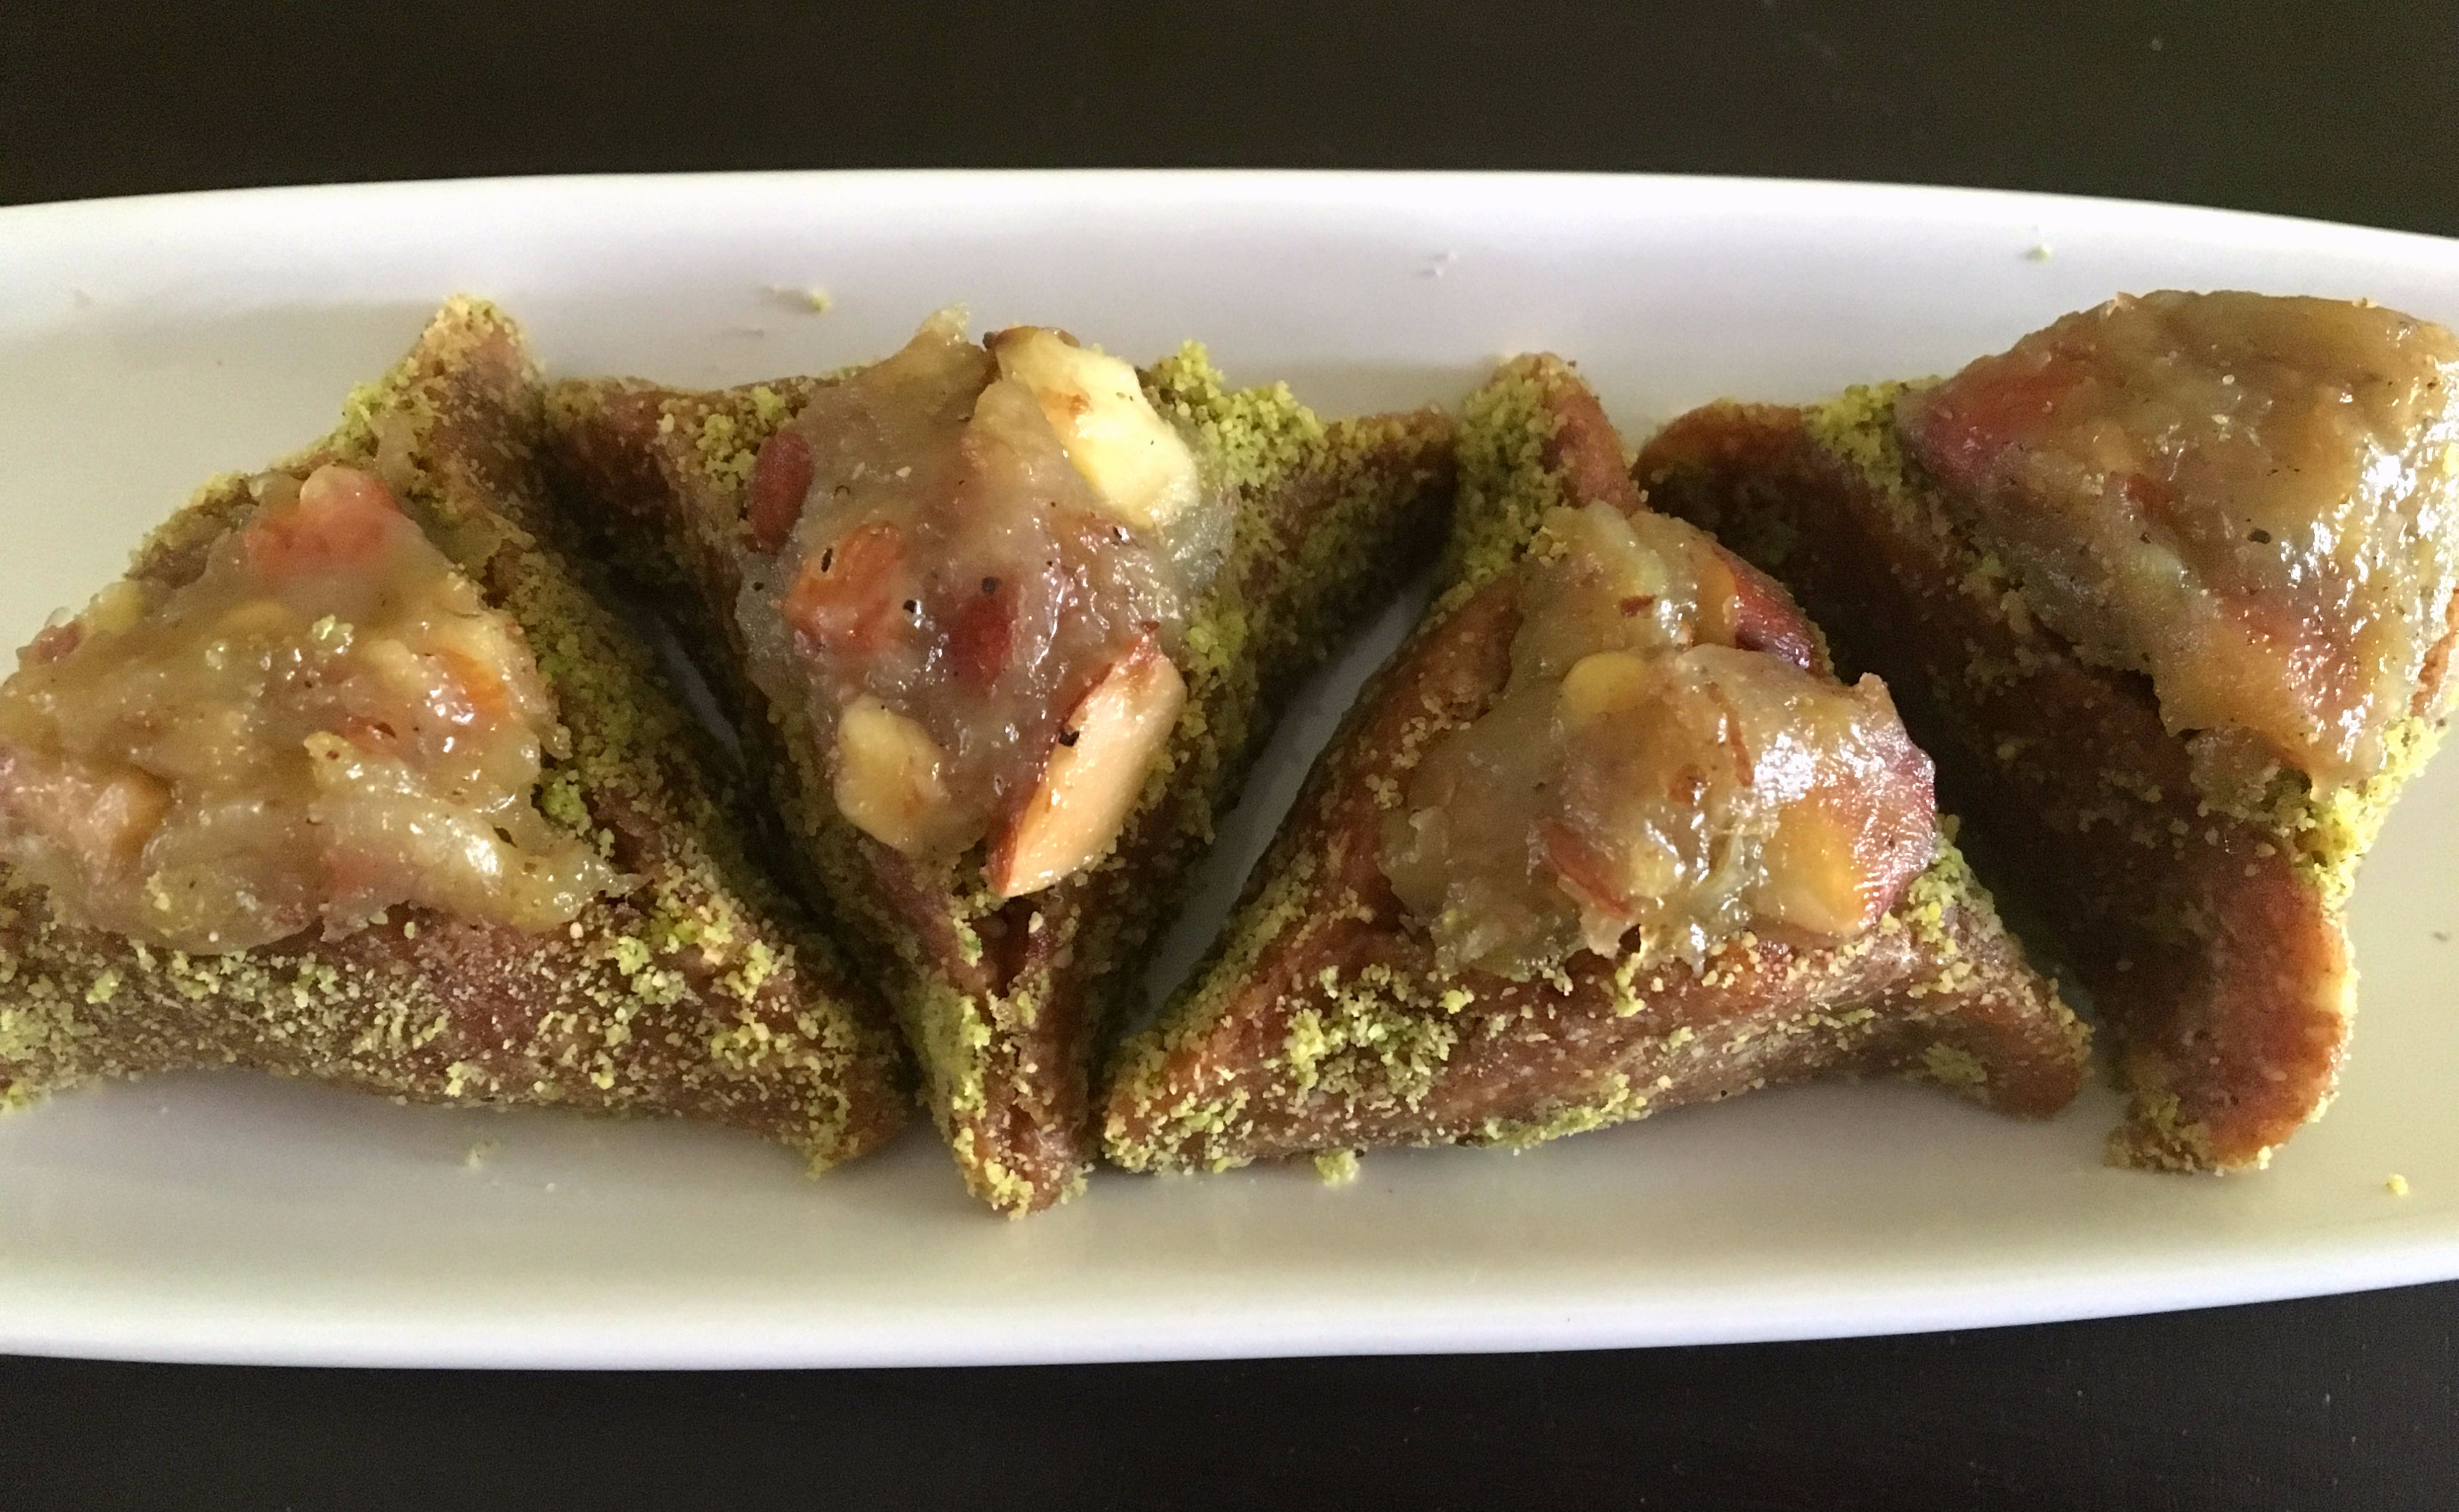 Delicious Date and Almond Hamantaschen stuffed with Banana Halwa!